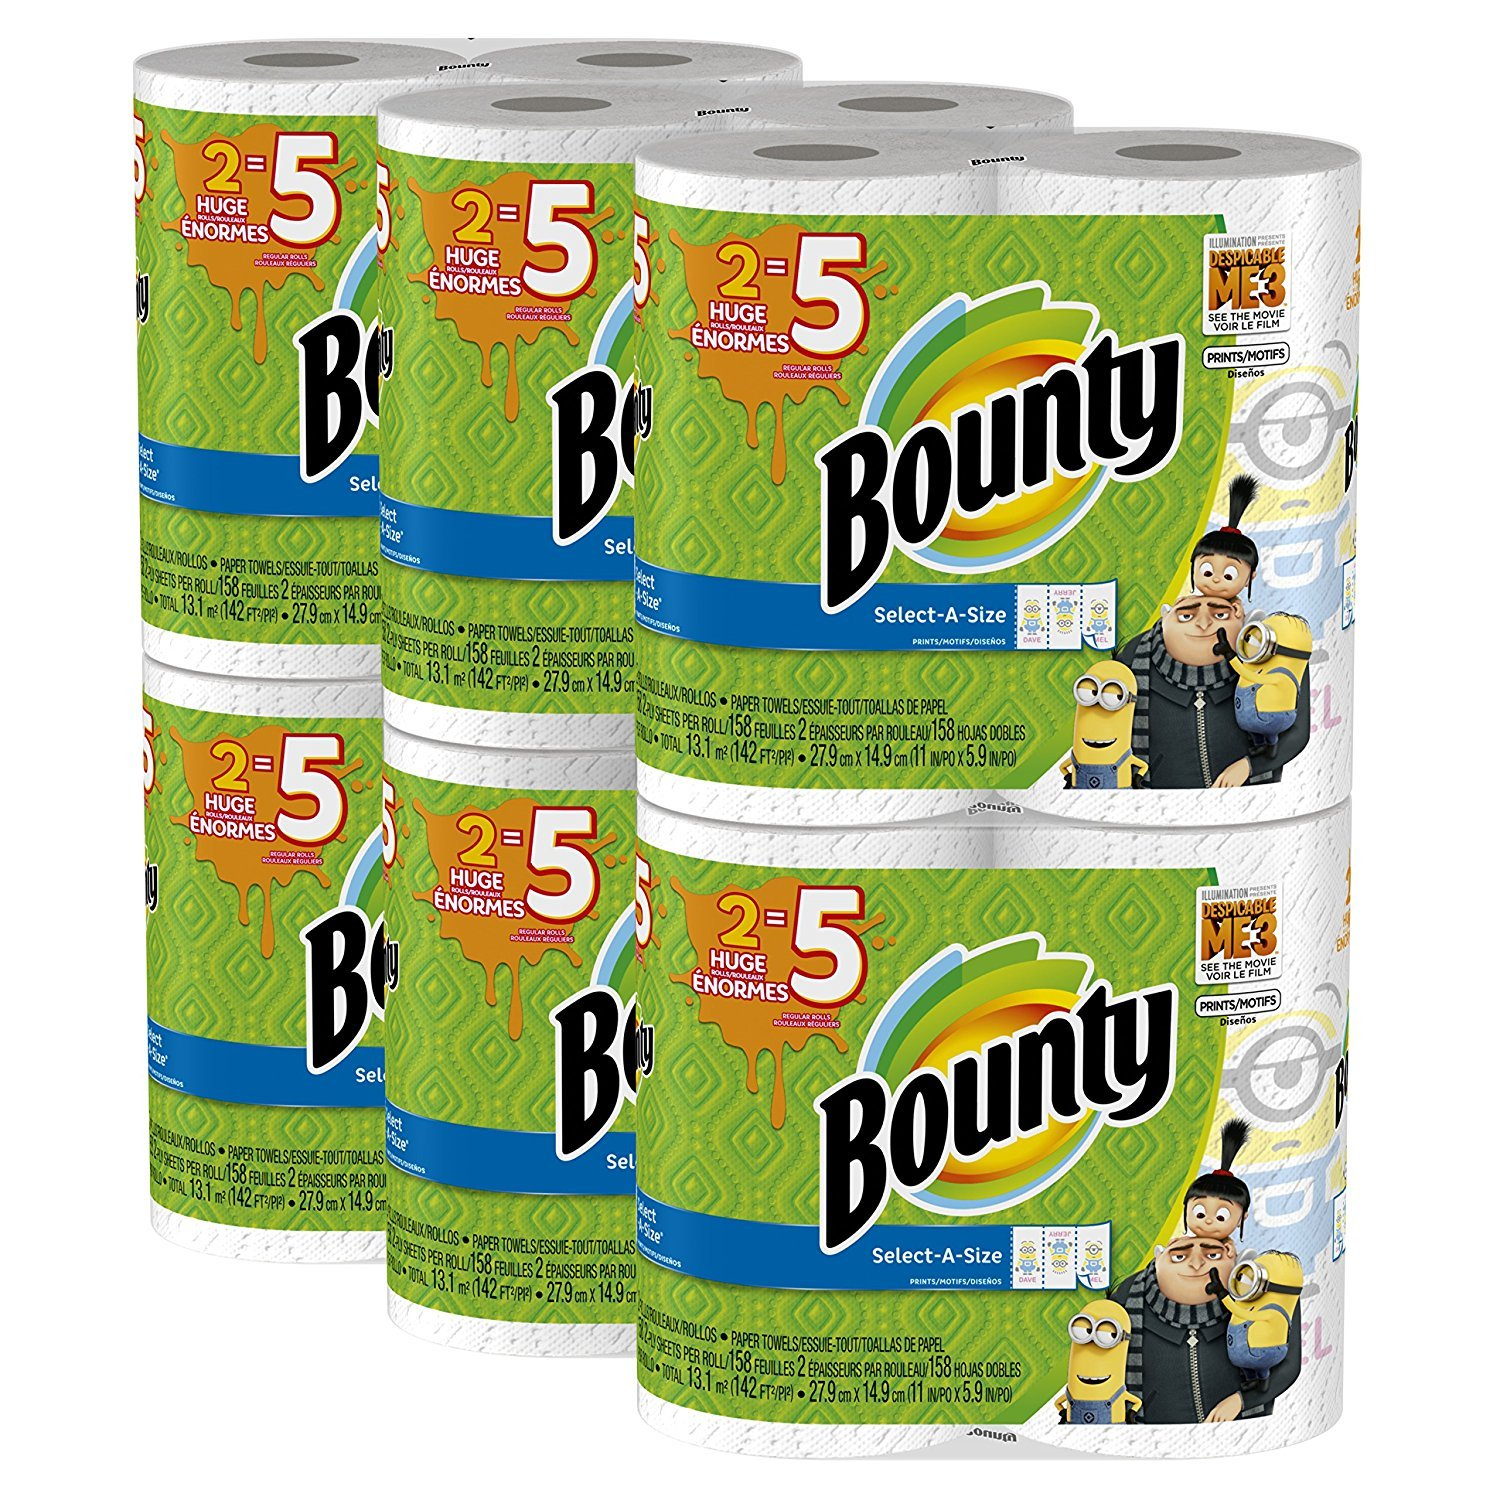 Bounty Despicable Me 3 Select-A-Size Paper Towels with Minion Prints GyoDud, Huge Roll, 3 Pack (12 Count Minions Print)